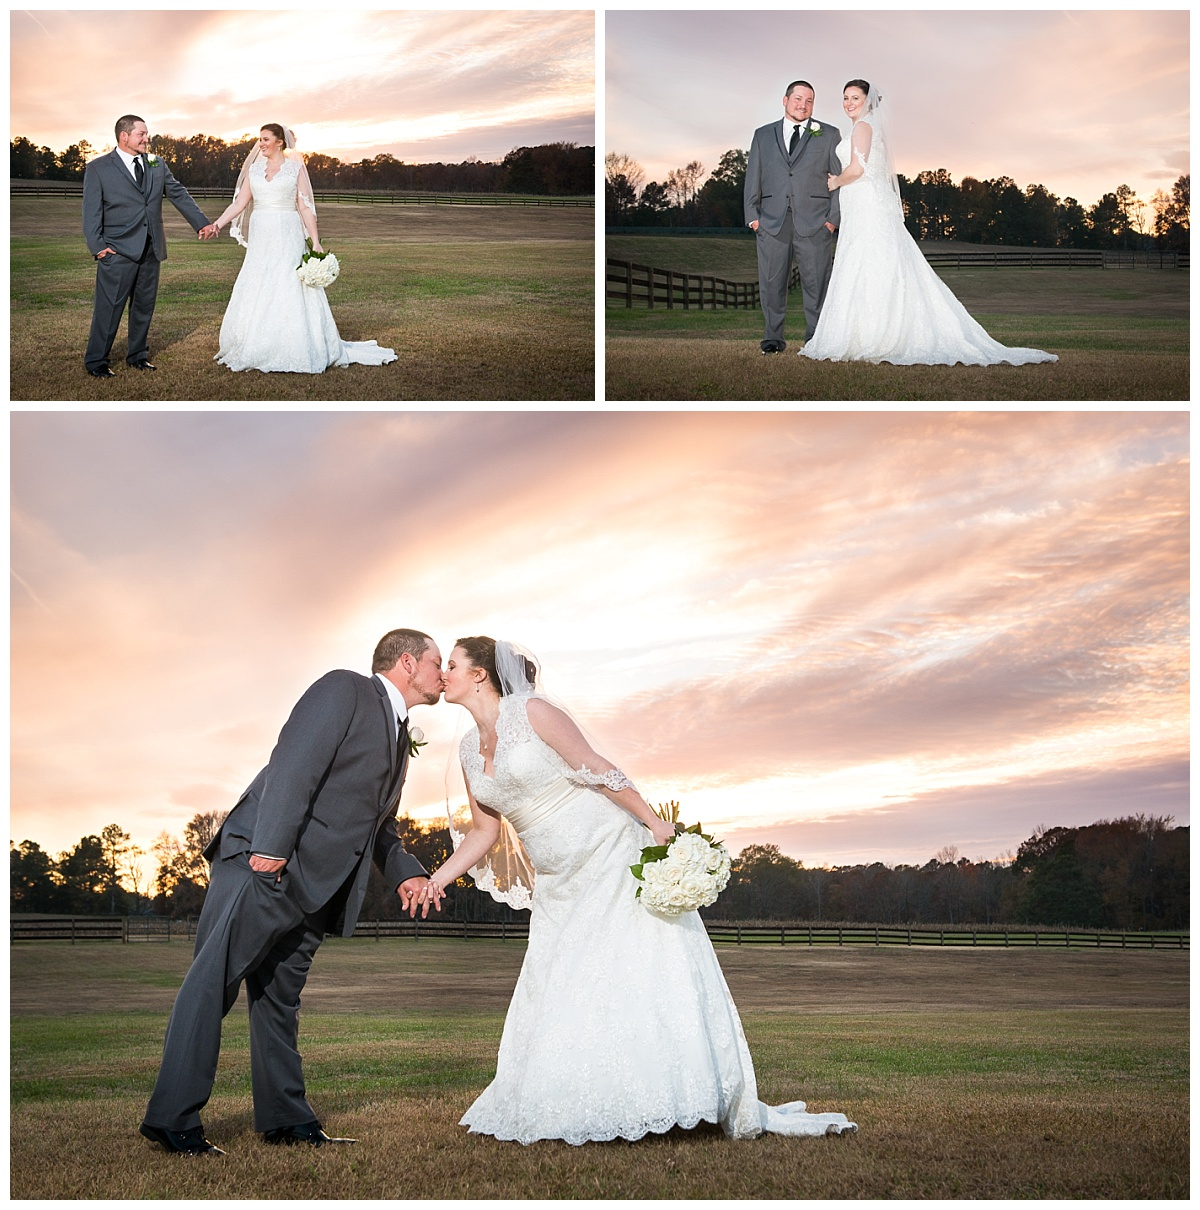 Sunset wedding at Farm at ridgeway